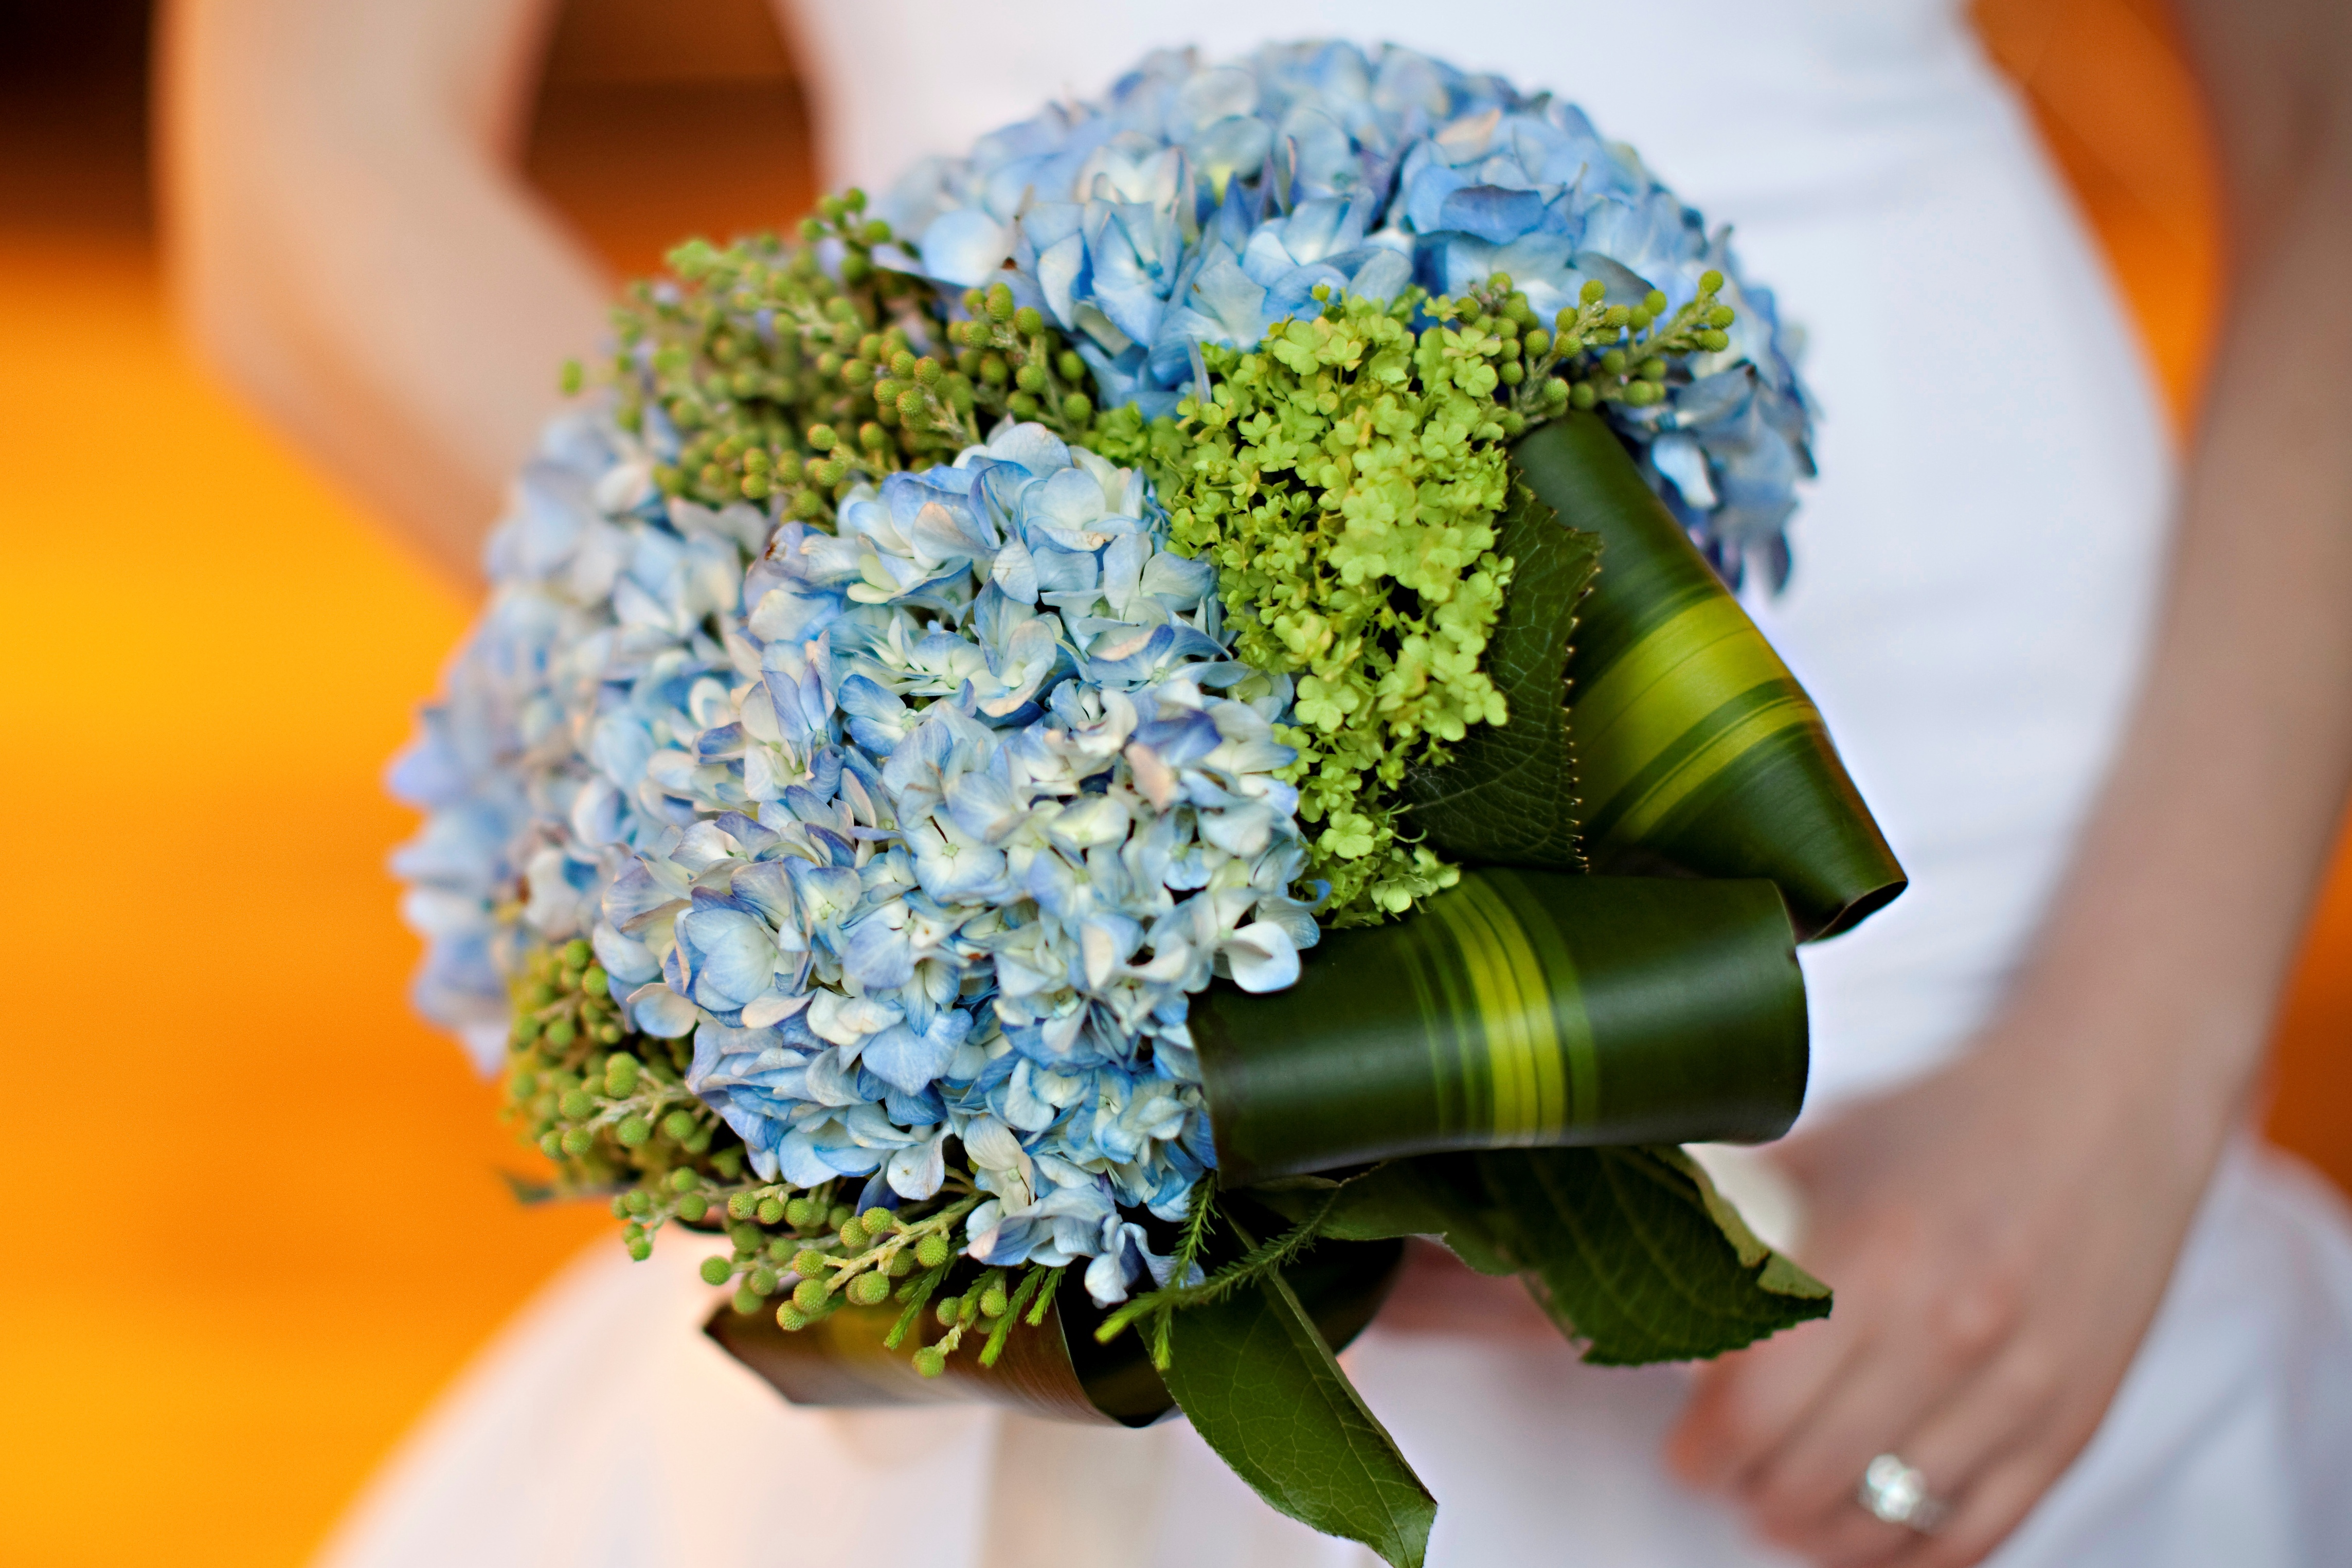 Flowers & Decor, blue, green, Bride Bouquets, Flowers, Bouquet, Bridal, Hand, Leaf, Hydrangea, Berries, Corn, Just bloomed florals, Held